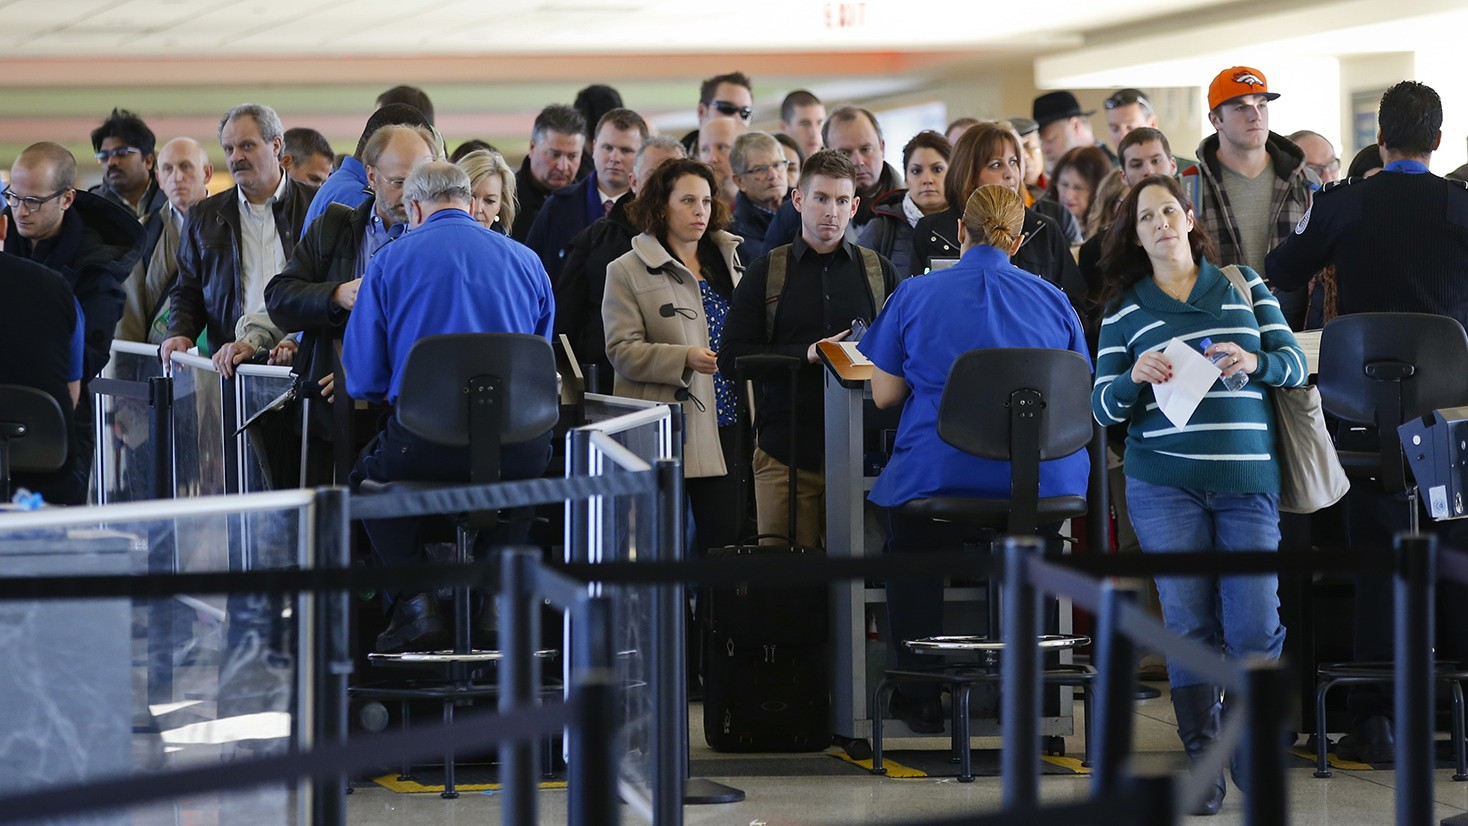 The TSA Fired its Head of Security After He Got $90,000 in Bonuses Despite Security Failures